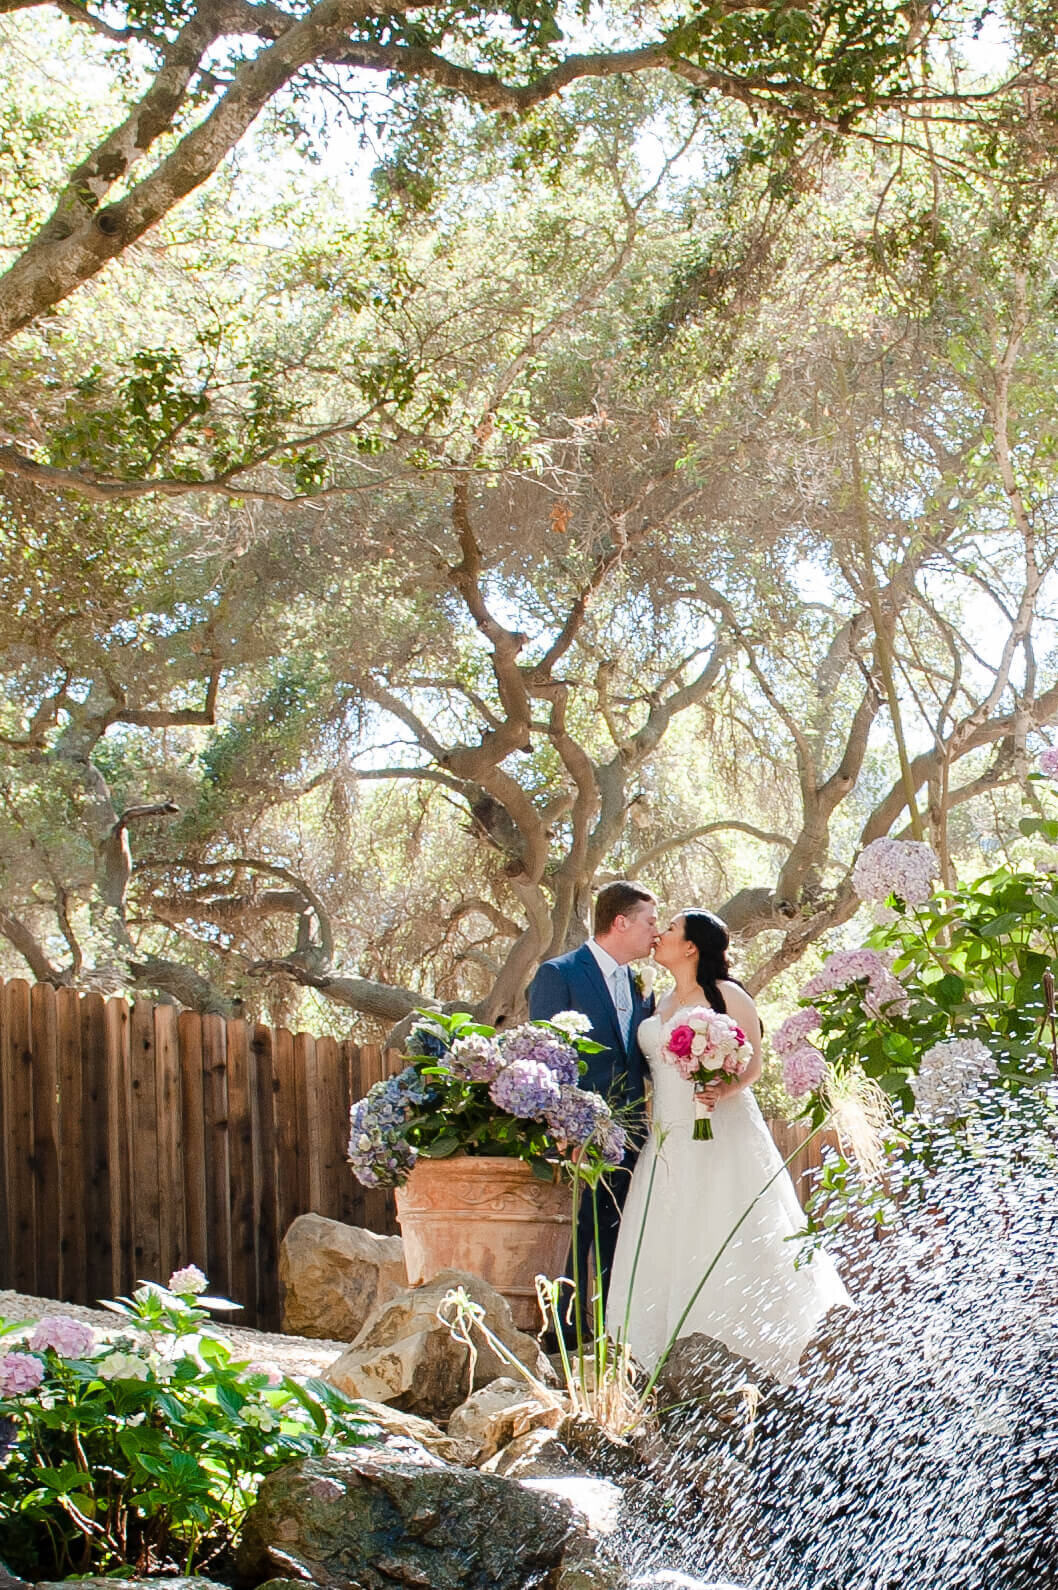 Calamigos Ranch Wedding - Malibu Wedding Photography by Karina Pires Photography